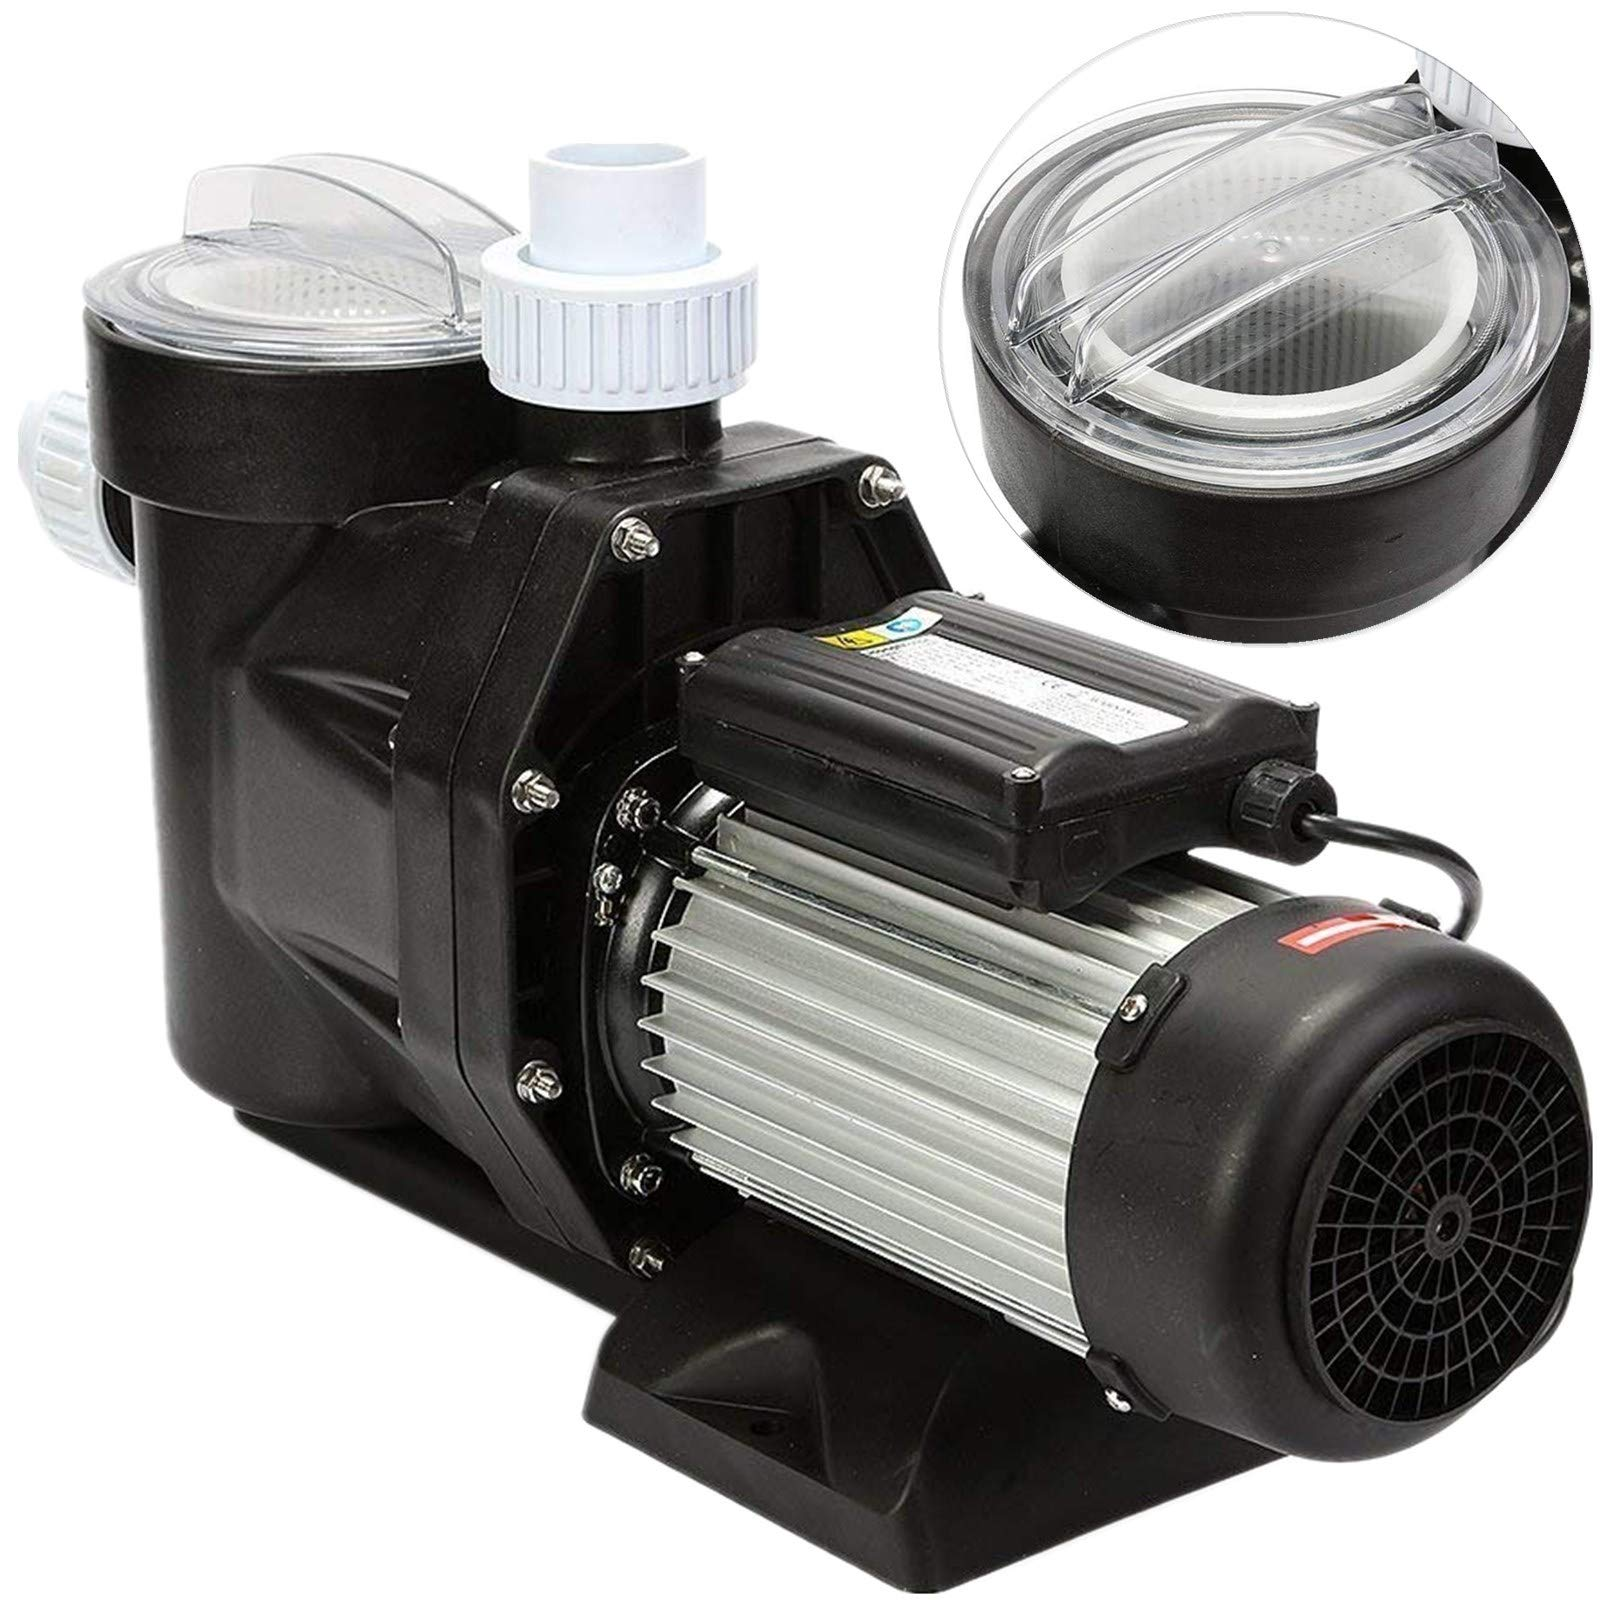 Happybuy Swimming Pool Pump 2.5HP 1850W Above Ground Swimming Pool Pump 148GPM Single Speed Swimming Pool Filter Pump for Pool Spa Water Circulation